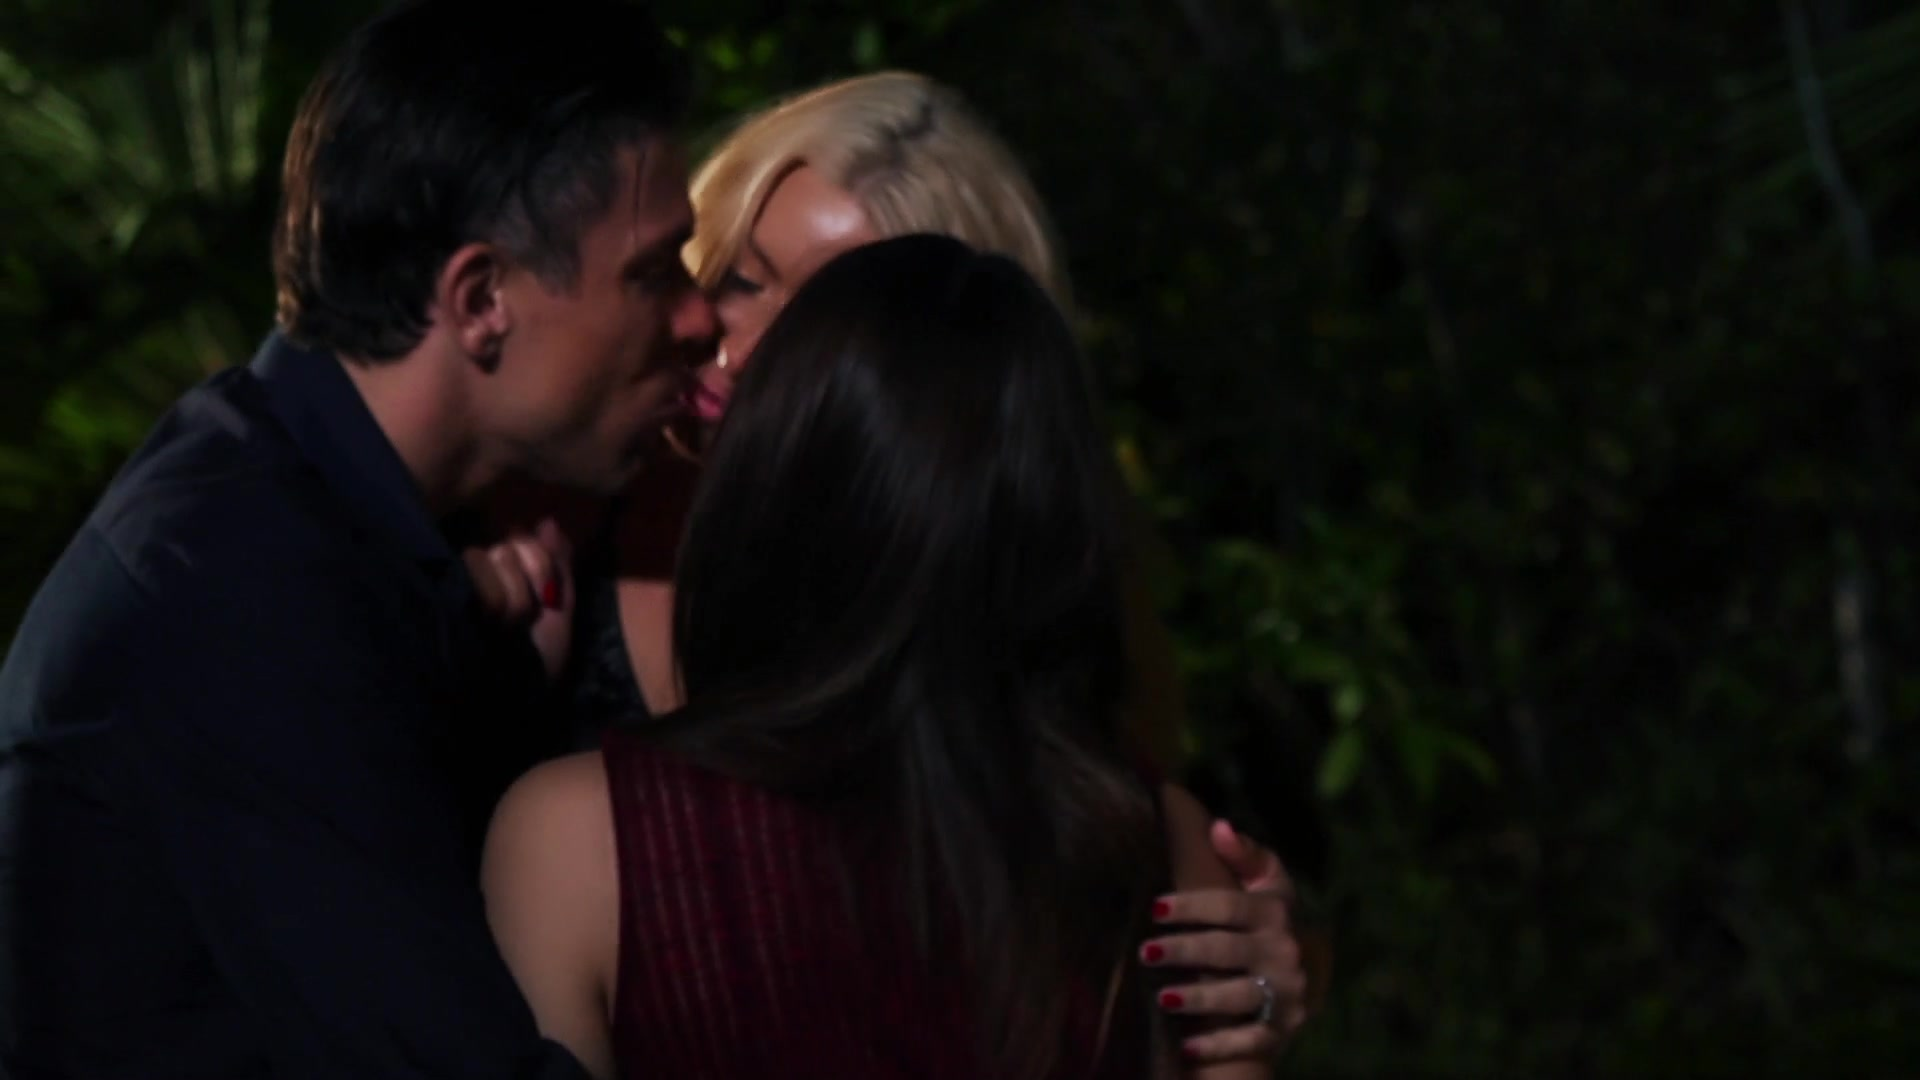 Scene with Mick Blue, Anikka Albrite and Sara Luvv - image 2 out of 20